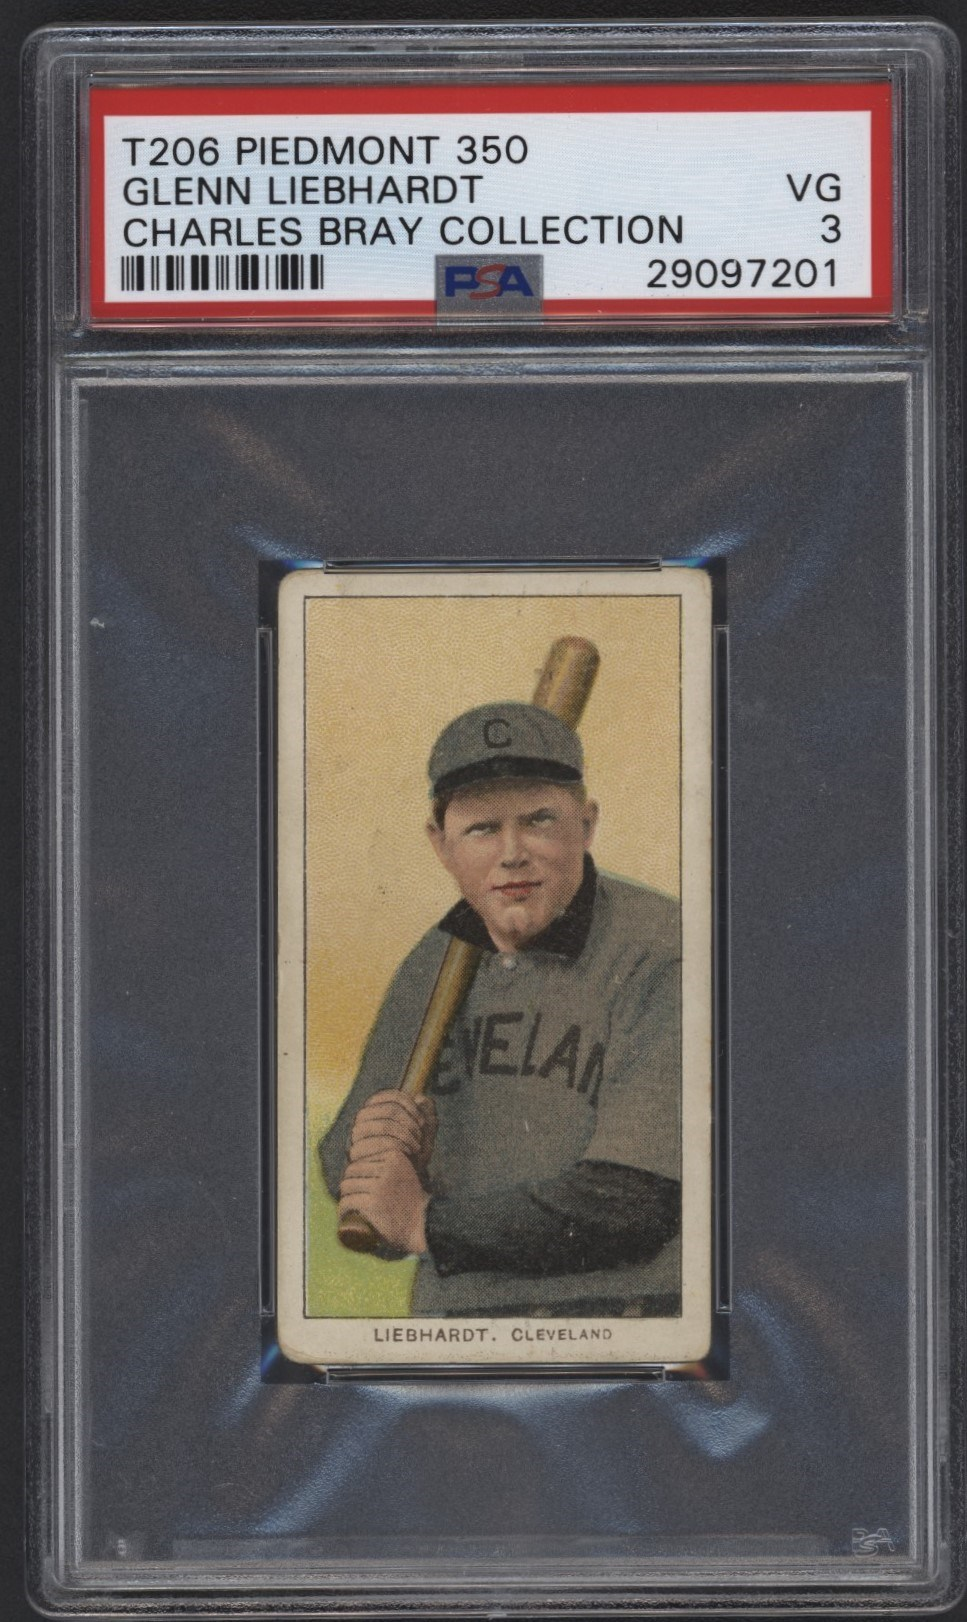 T206 Piedmont 350 Glenn Liebhardt PSA 3 From the Charles Bray Collection